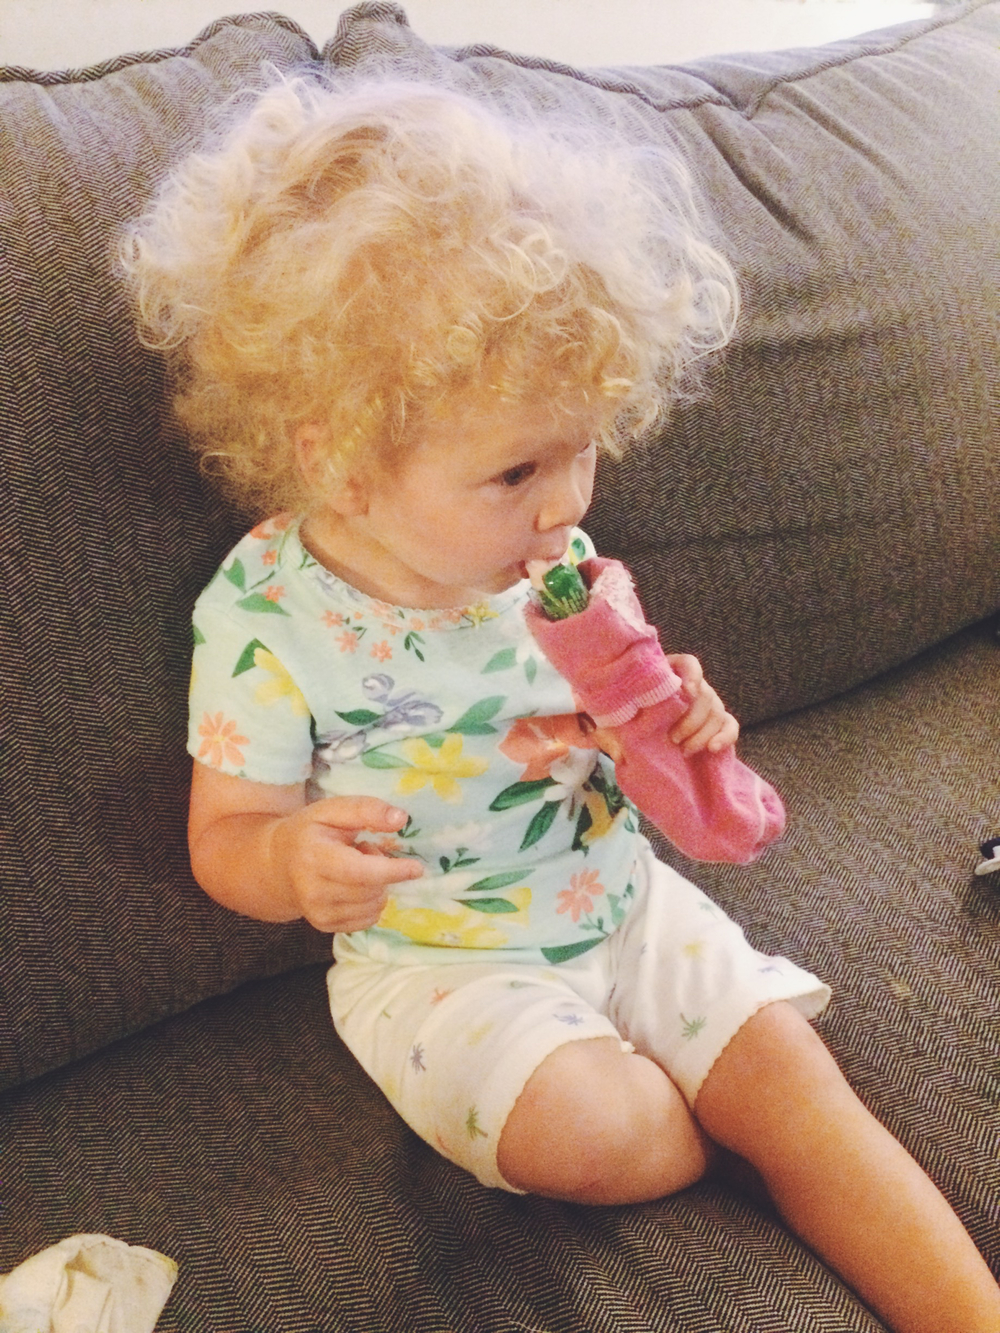 Mom hack: freeze Gogurts and use a sock to make them more comfortable to hold.